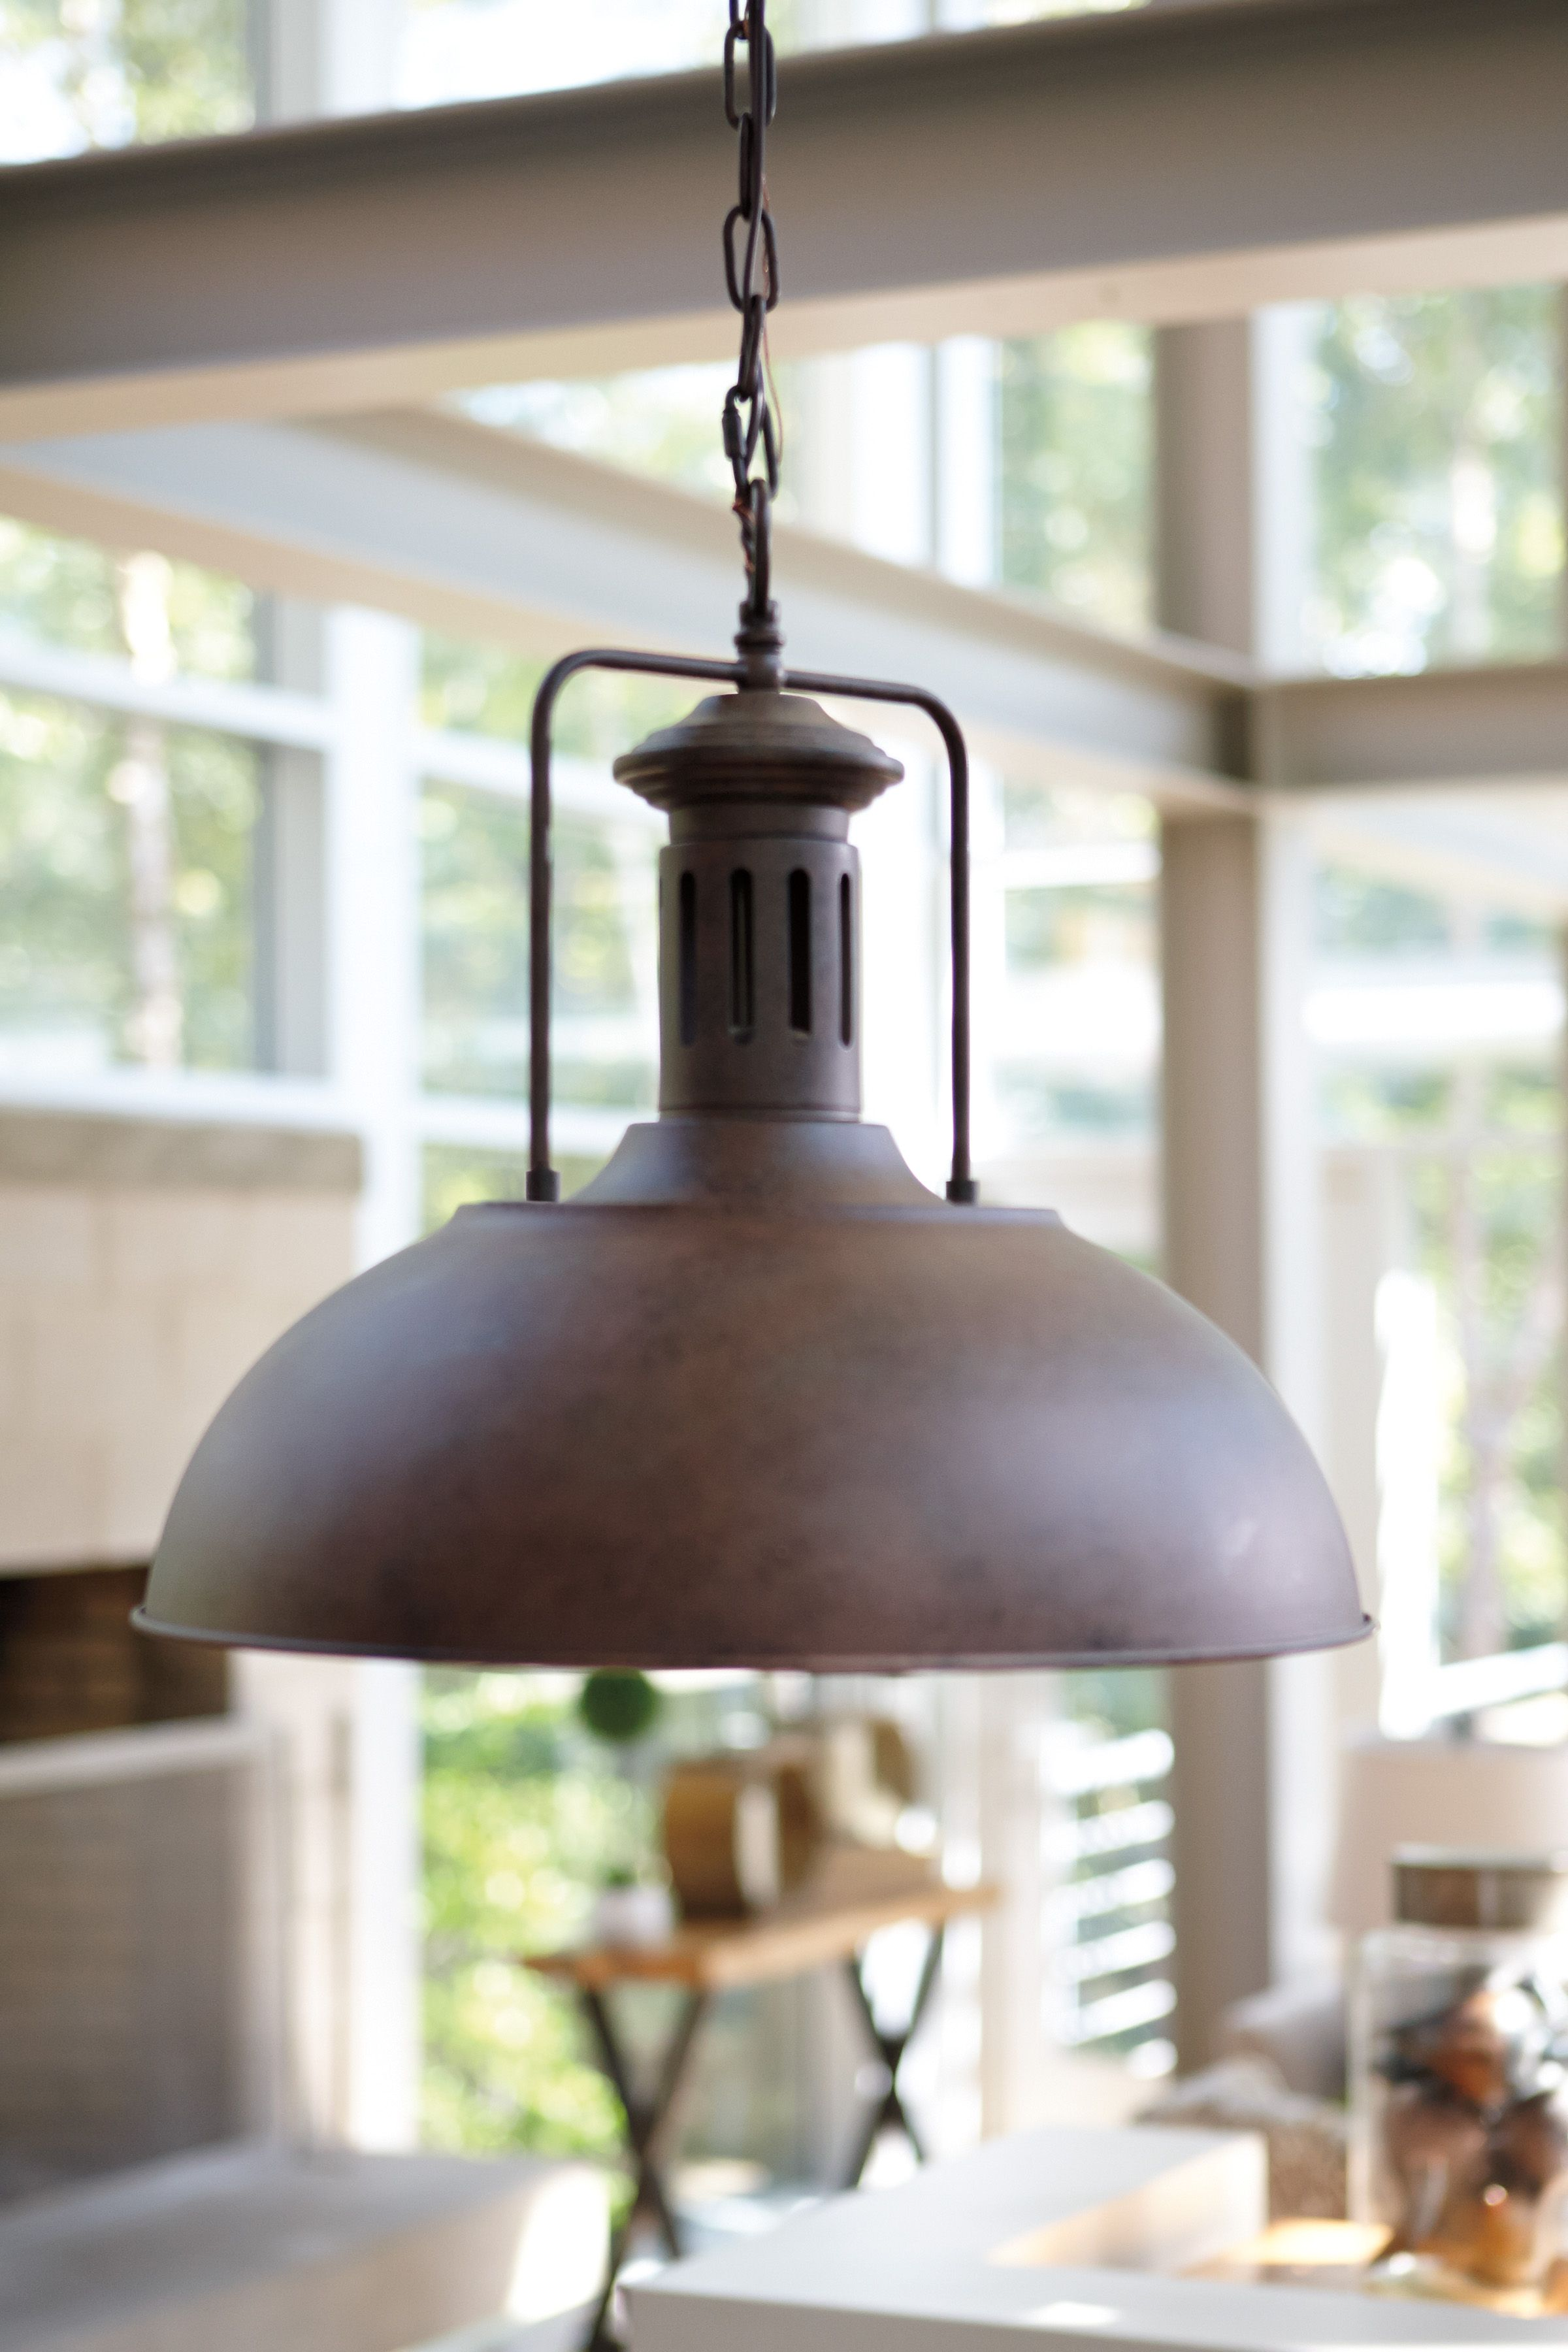 Country Chic Pendant Lights In A Rustic Metal Finish